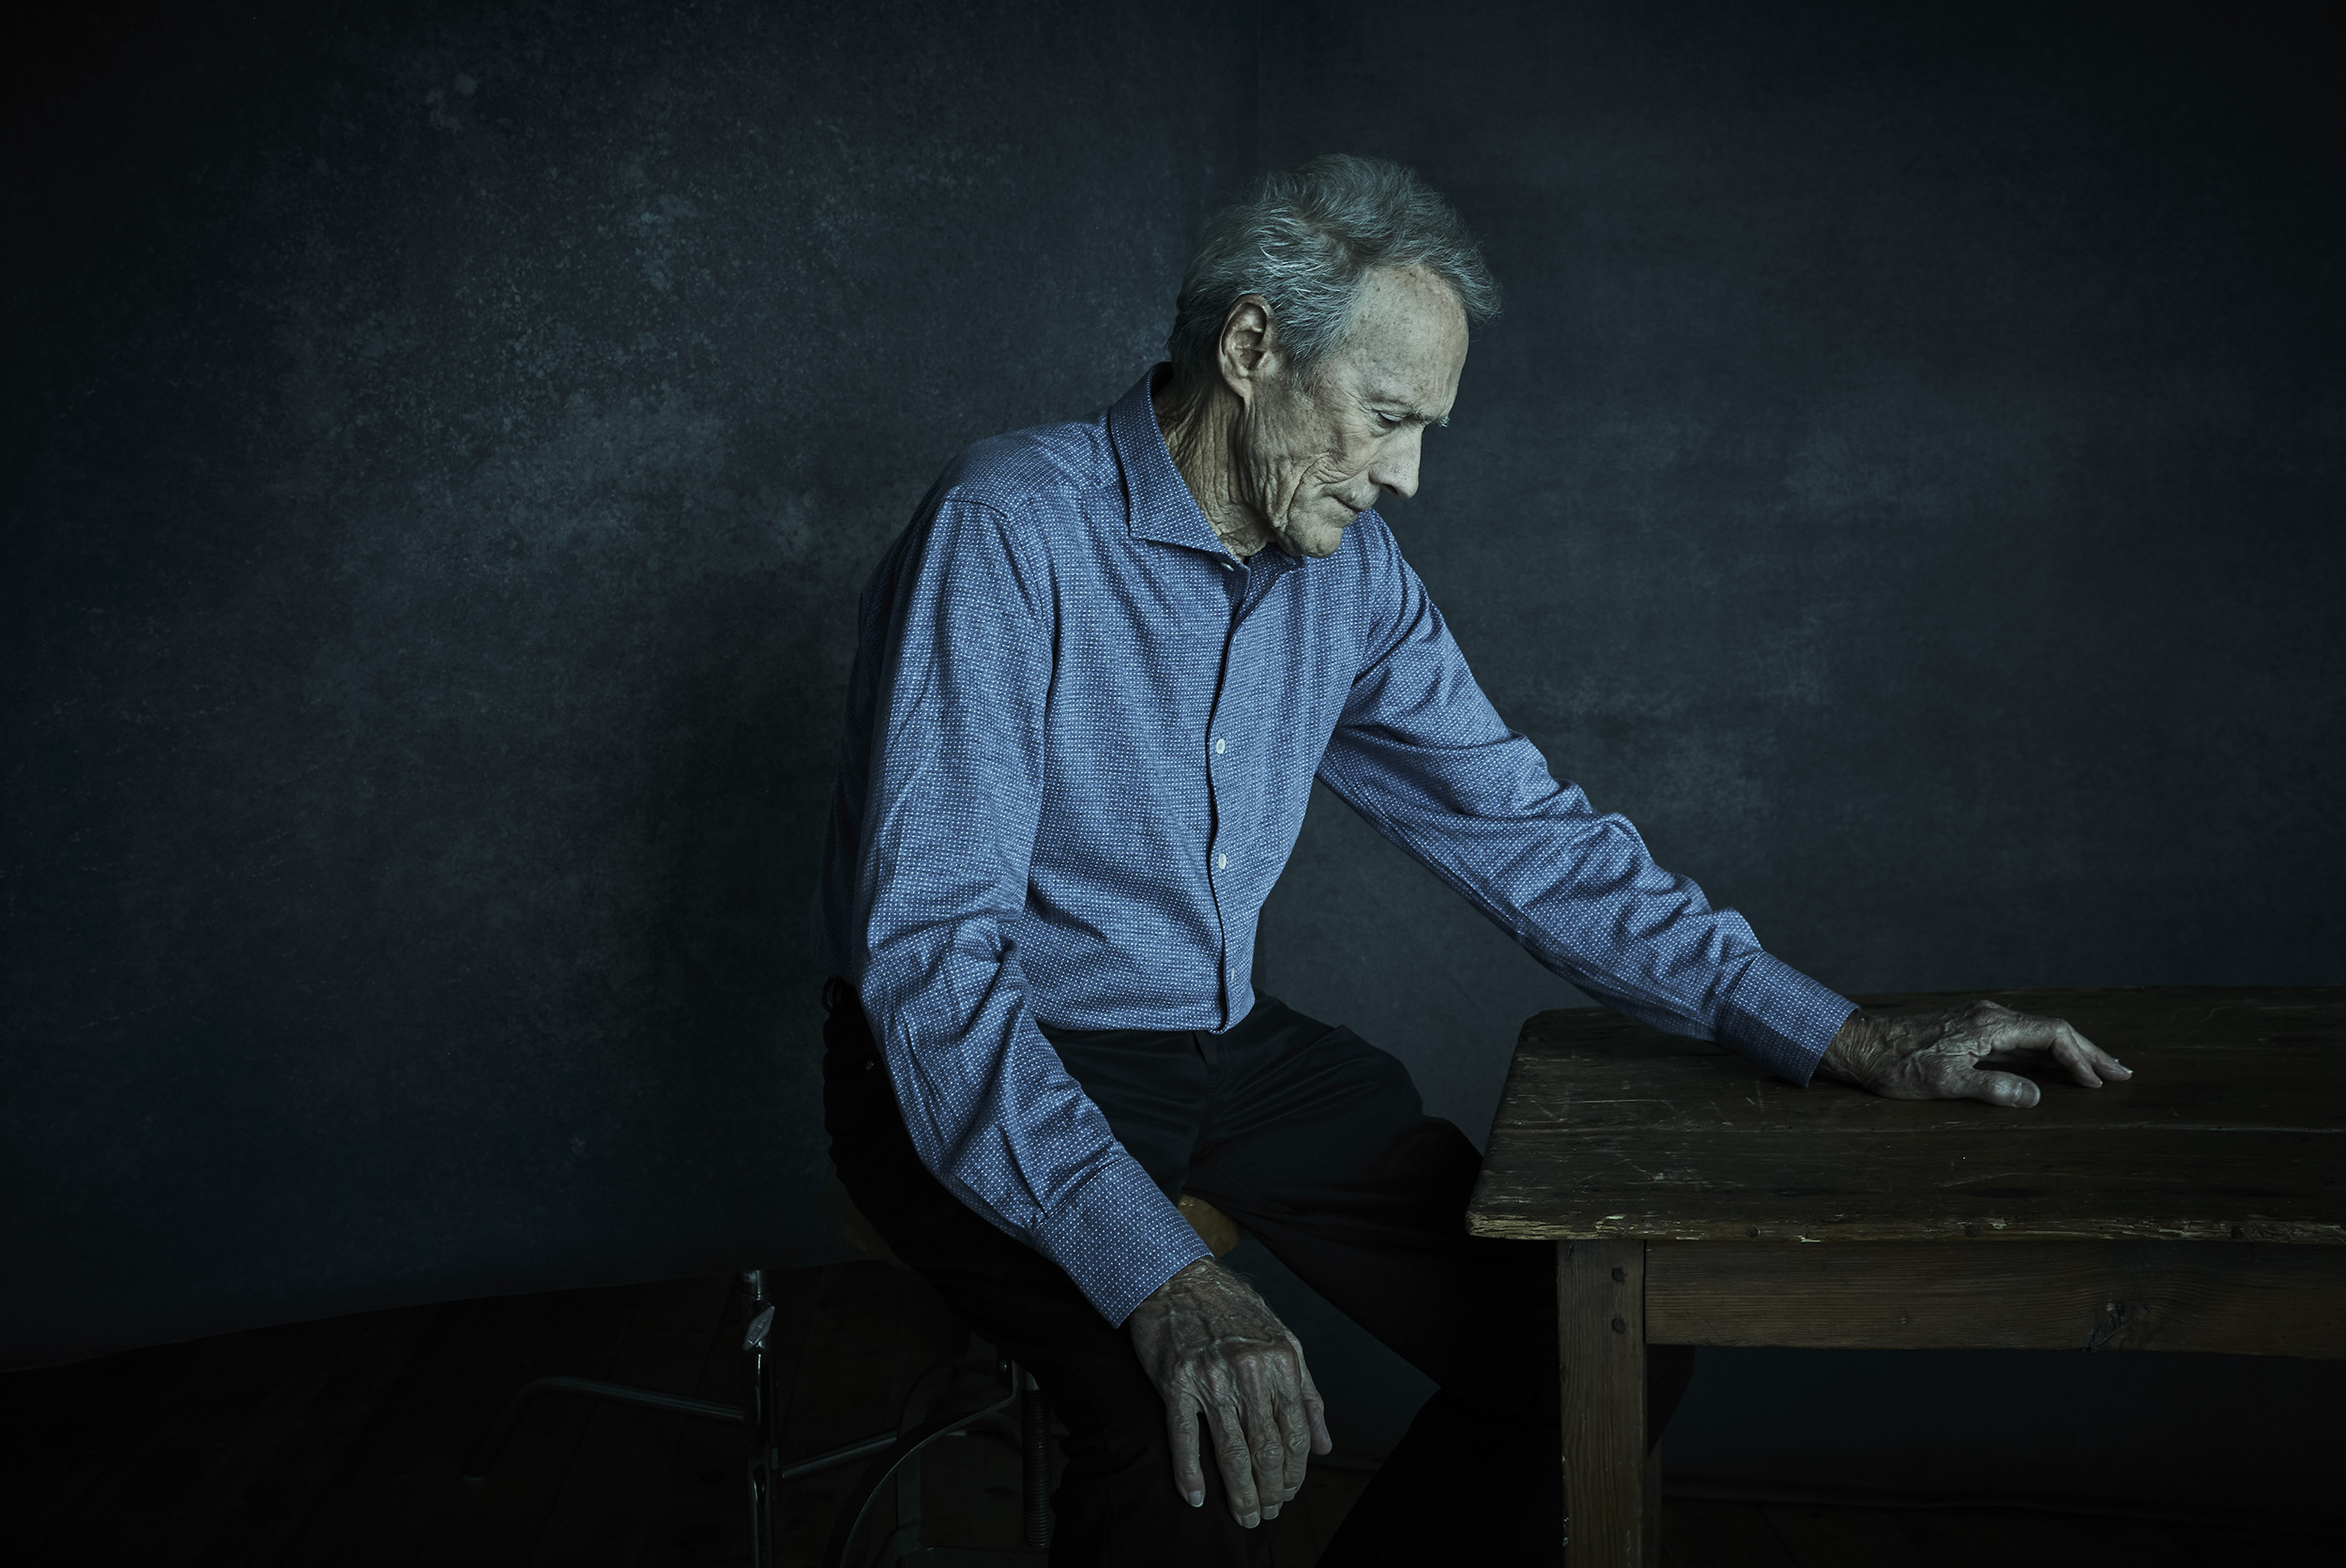 Clint-Eastwood-by-Robert-Ascroft09